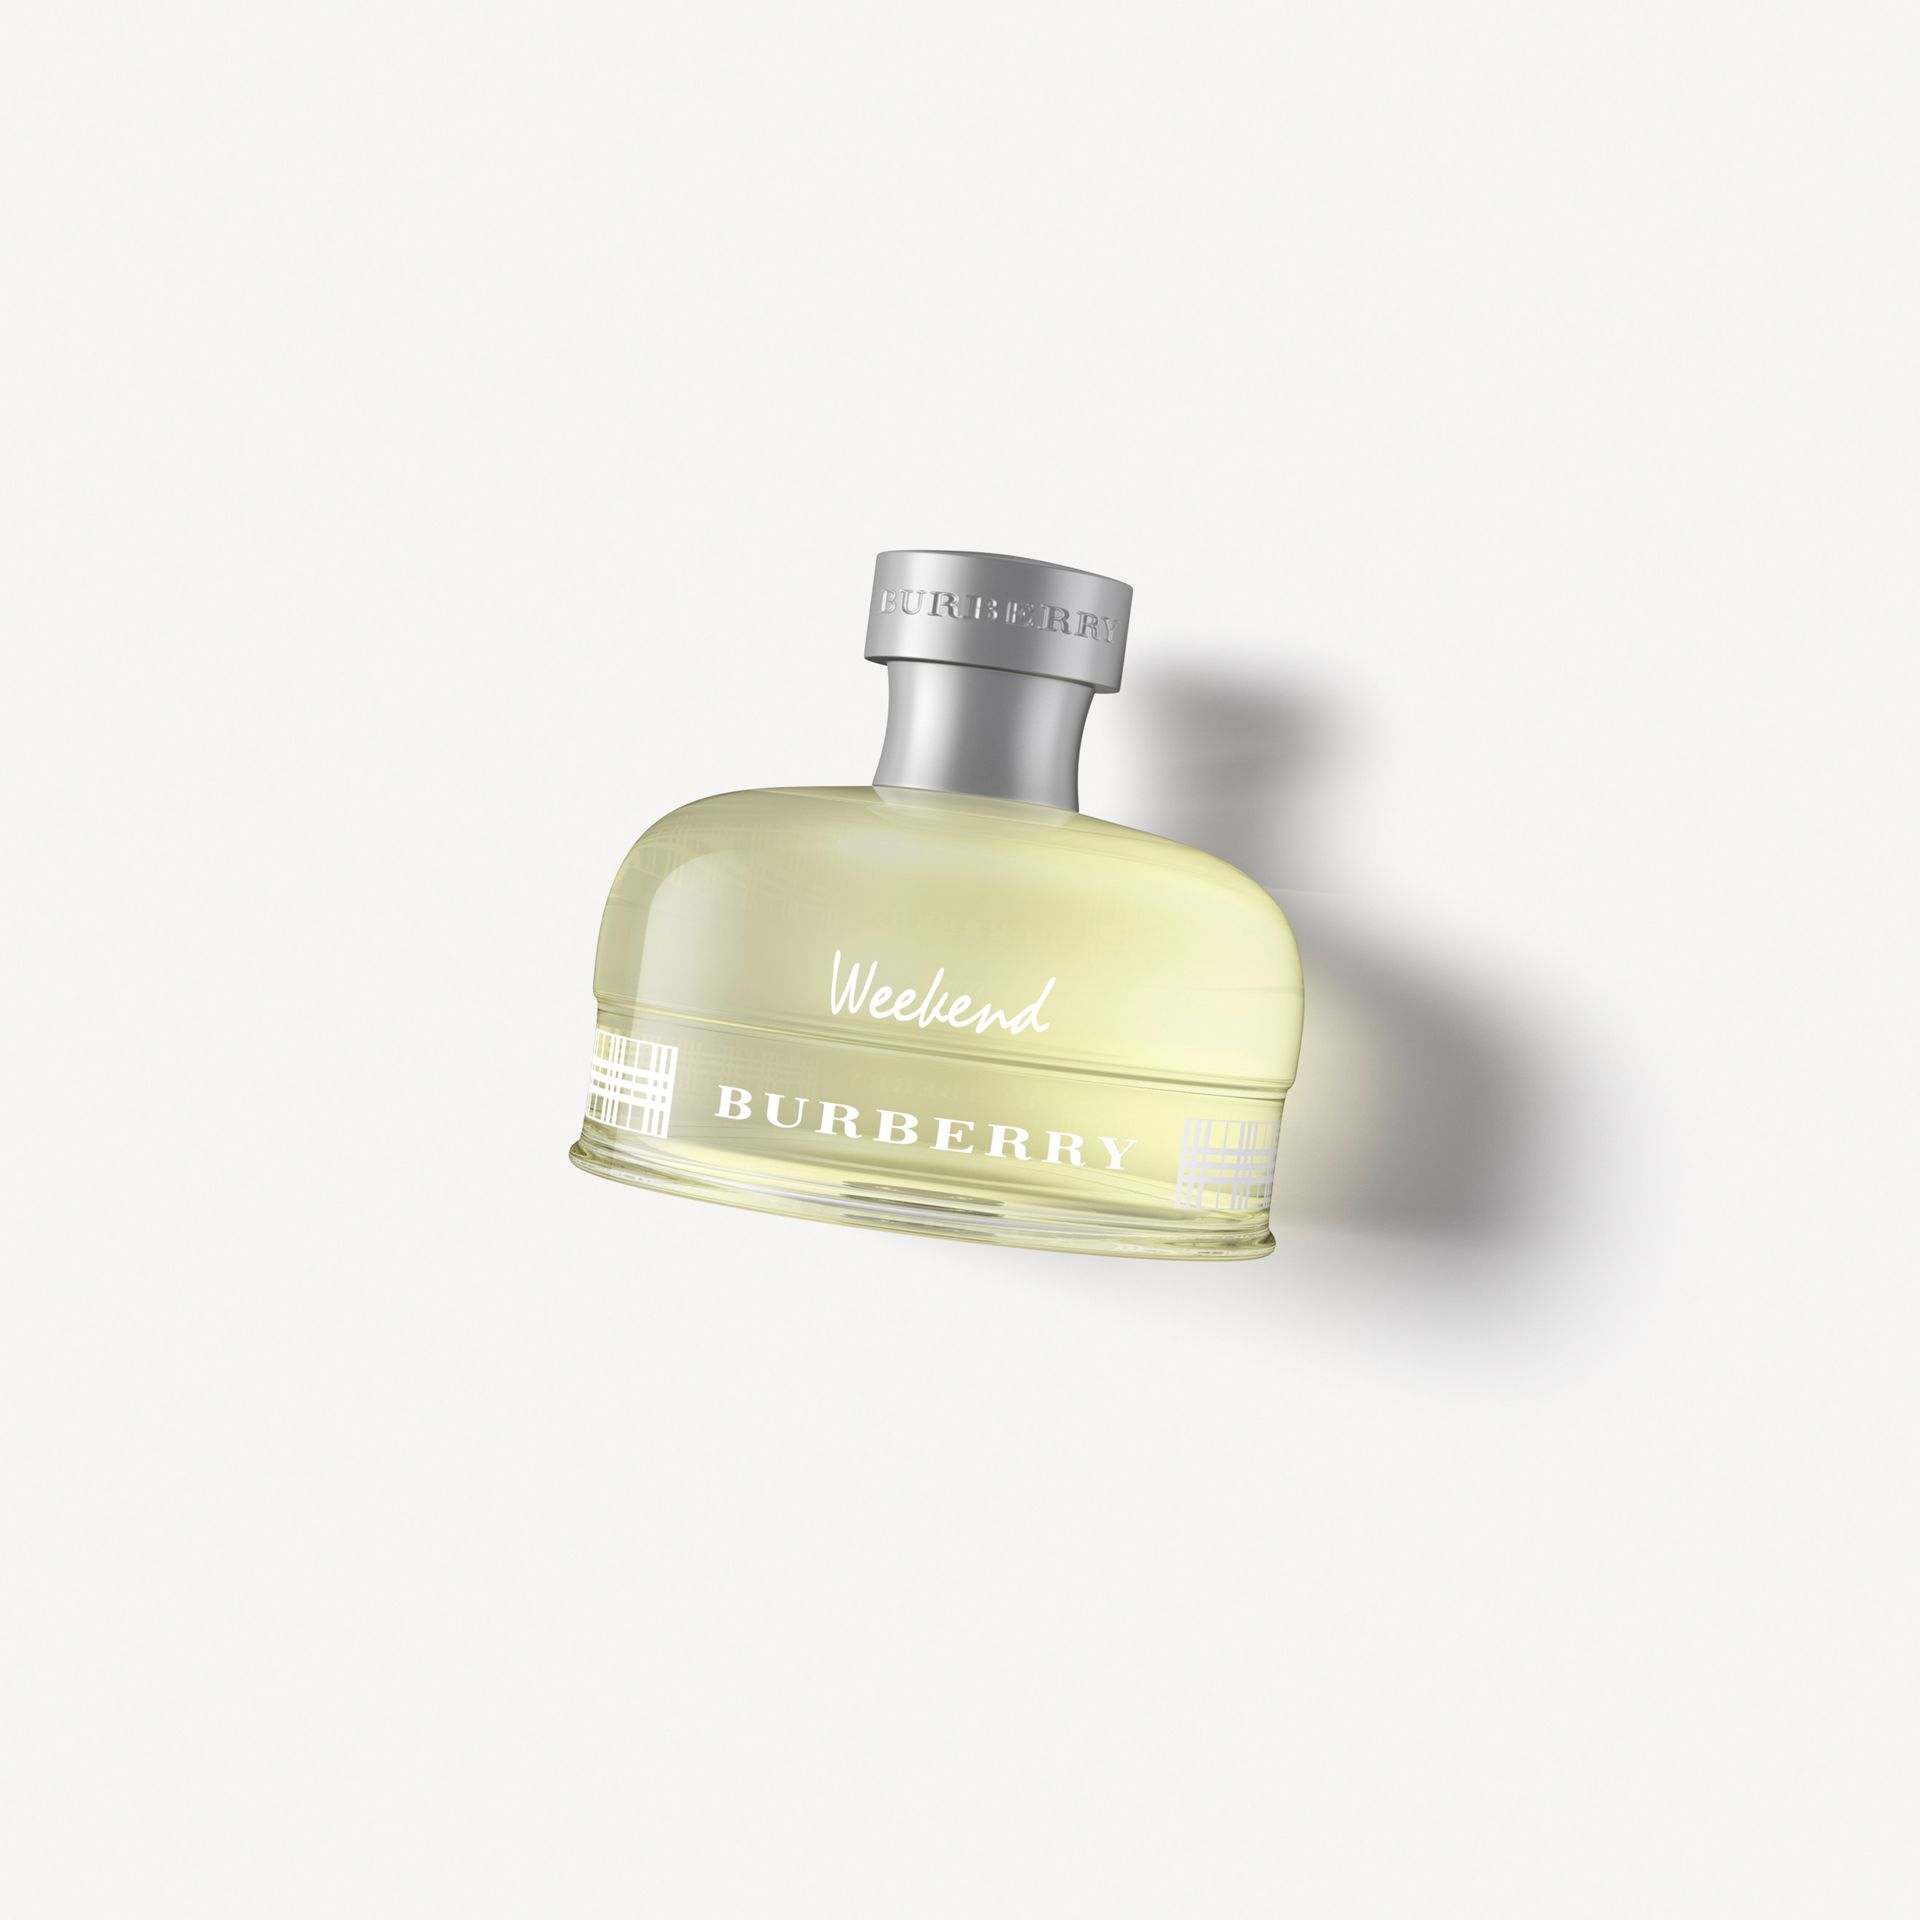 Burberry Weekend 香水 100ml - 圖庫照片 1